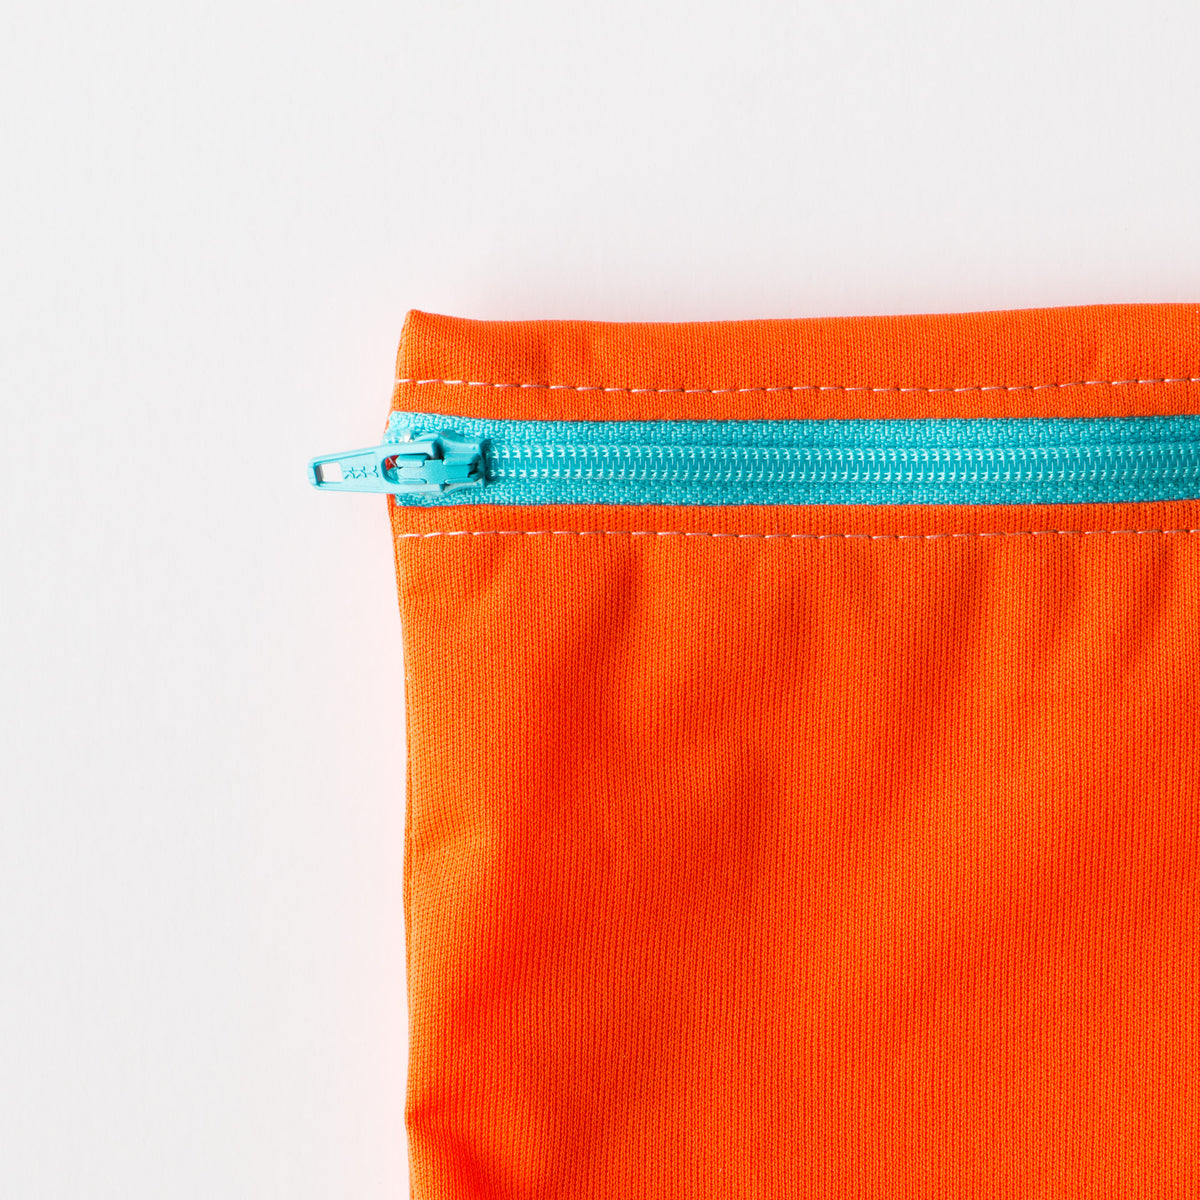 Orange Reusable Snack & Sandwich Bag - Food Safe & Eco-friendly - Sold by Chic & Basta